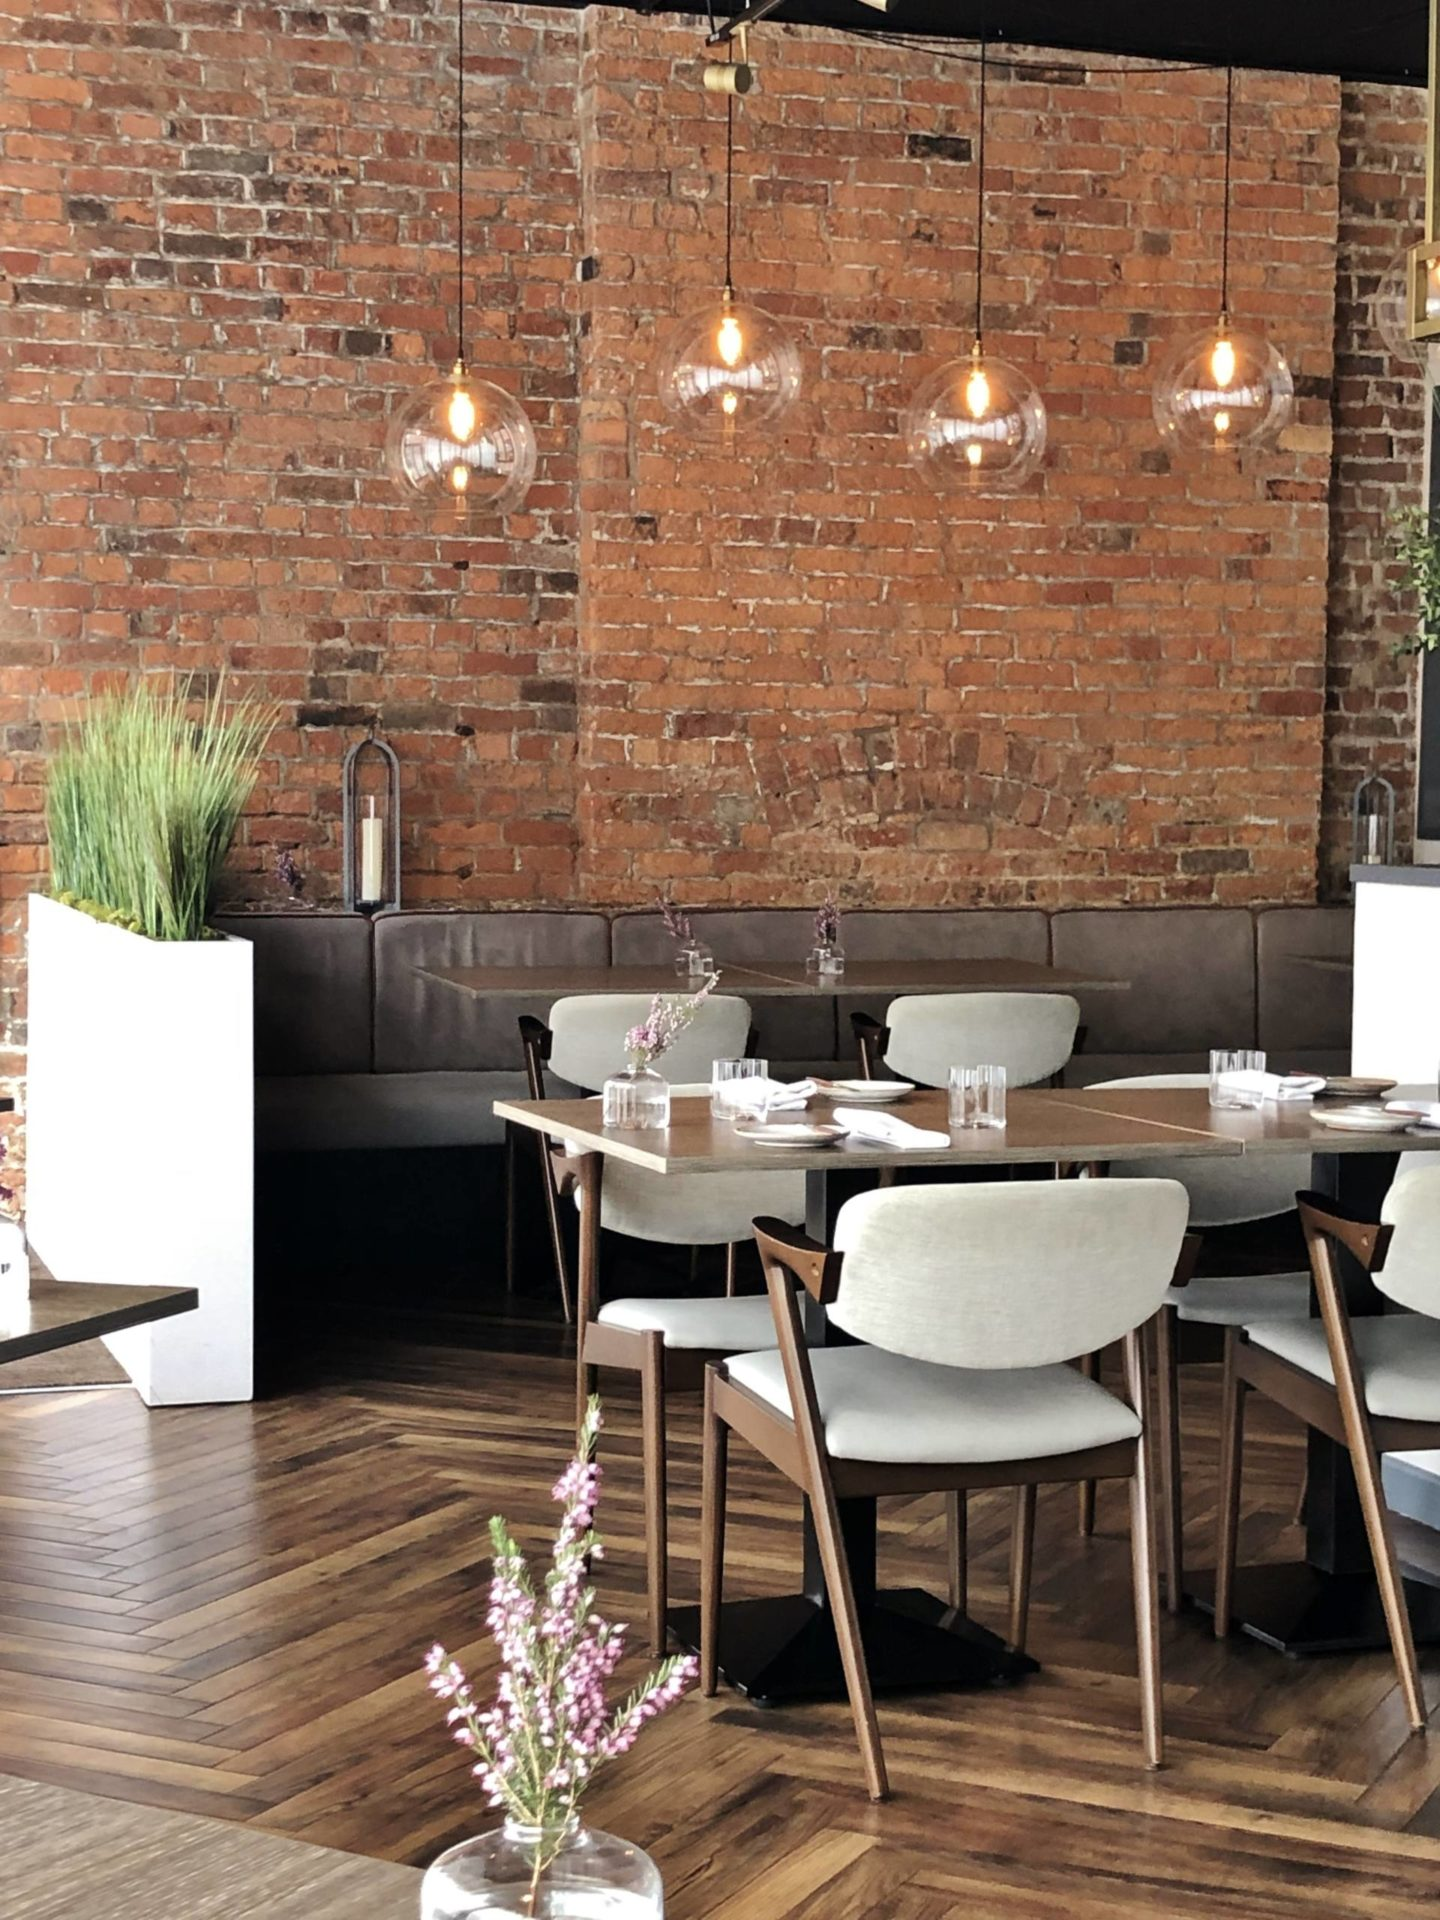 Folium restaurant brick walls tables glassware